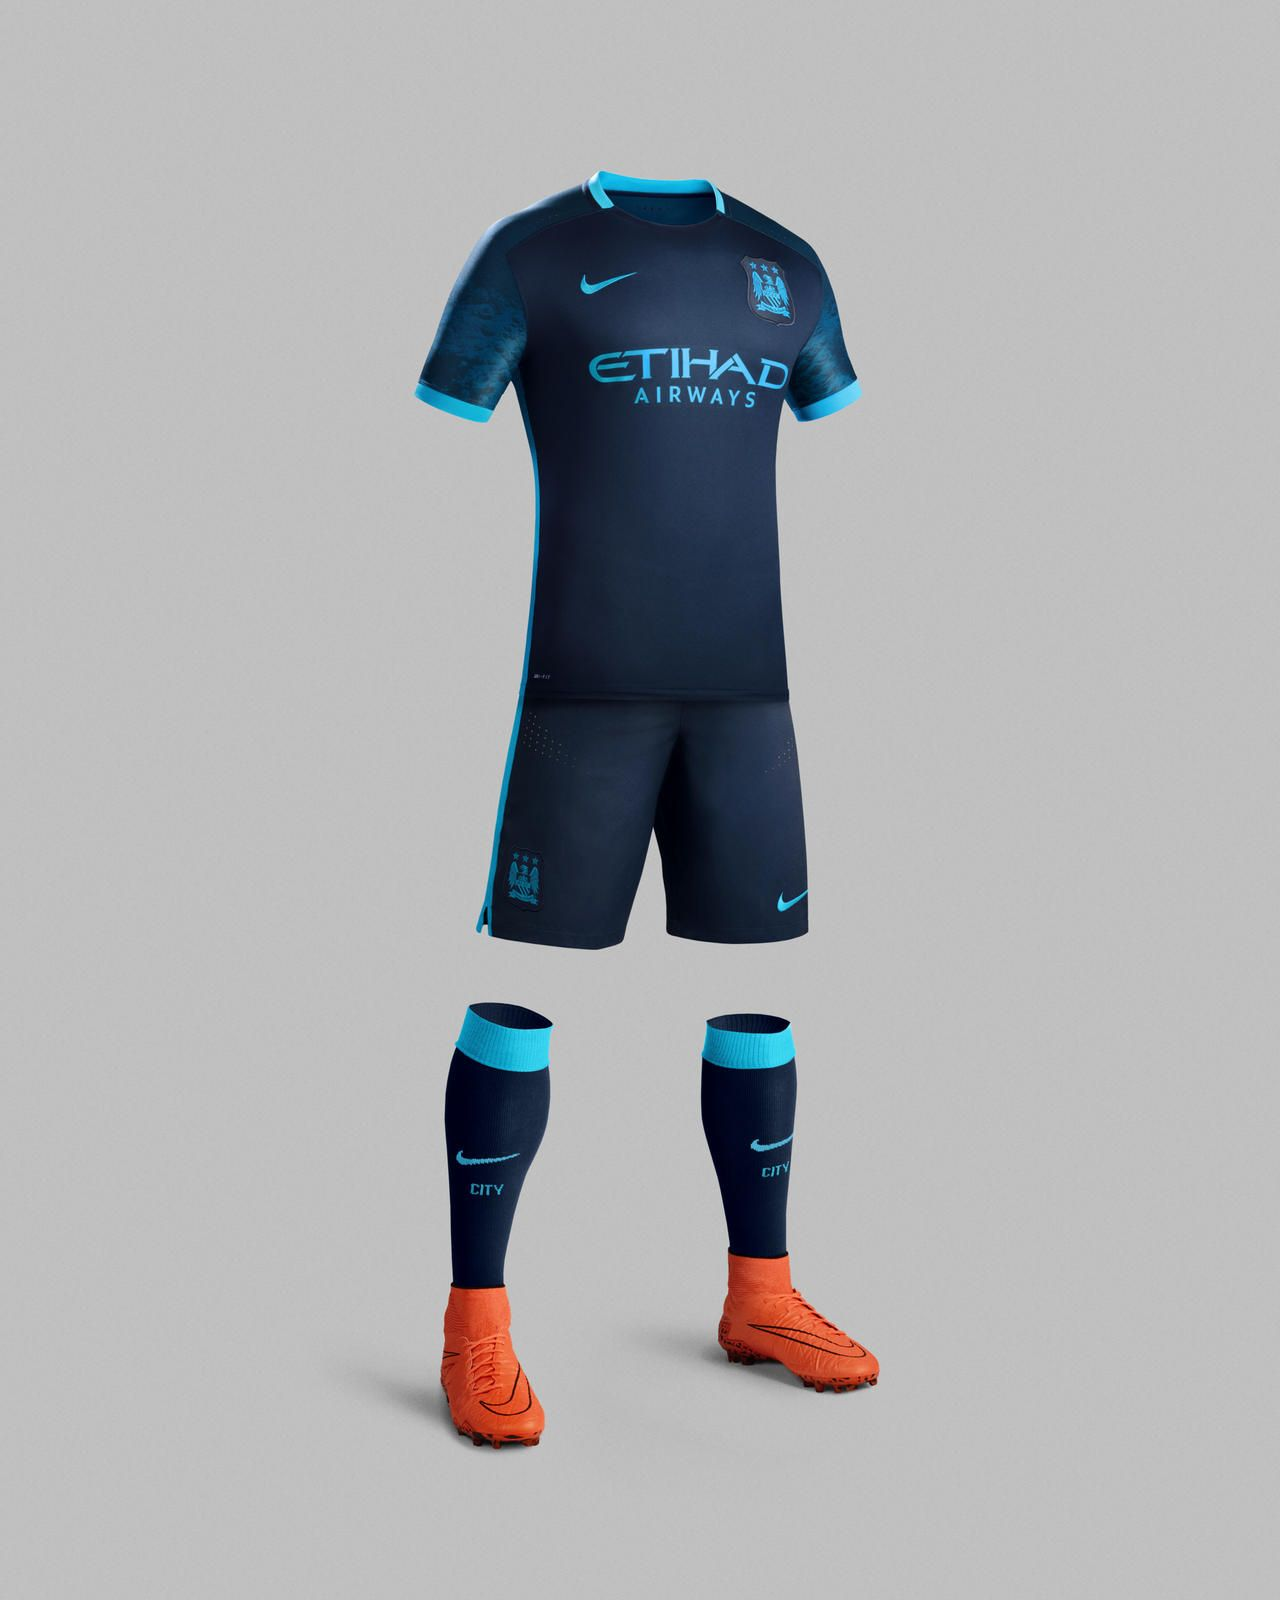 Club Anthem Inspires 2015-16 Manchester City Away Kit Manchester City s new  away kit honors its passionate legion of fans 0a3edf8d56417